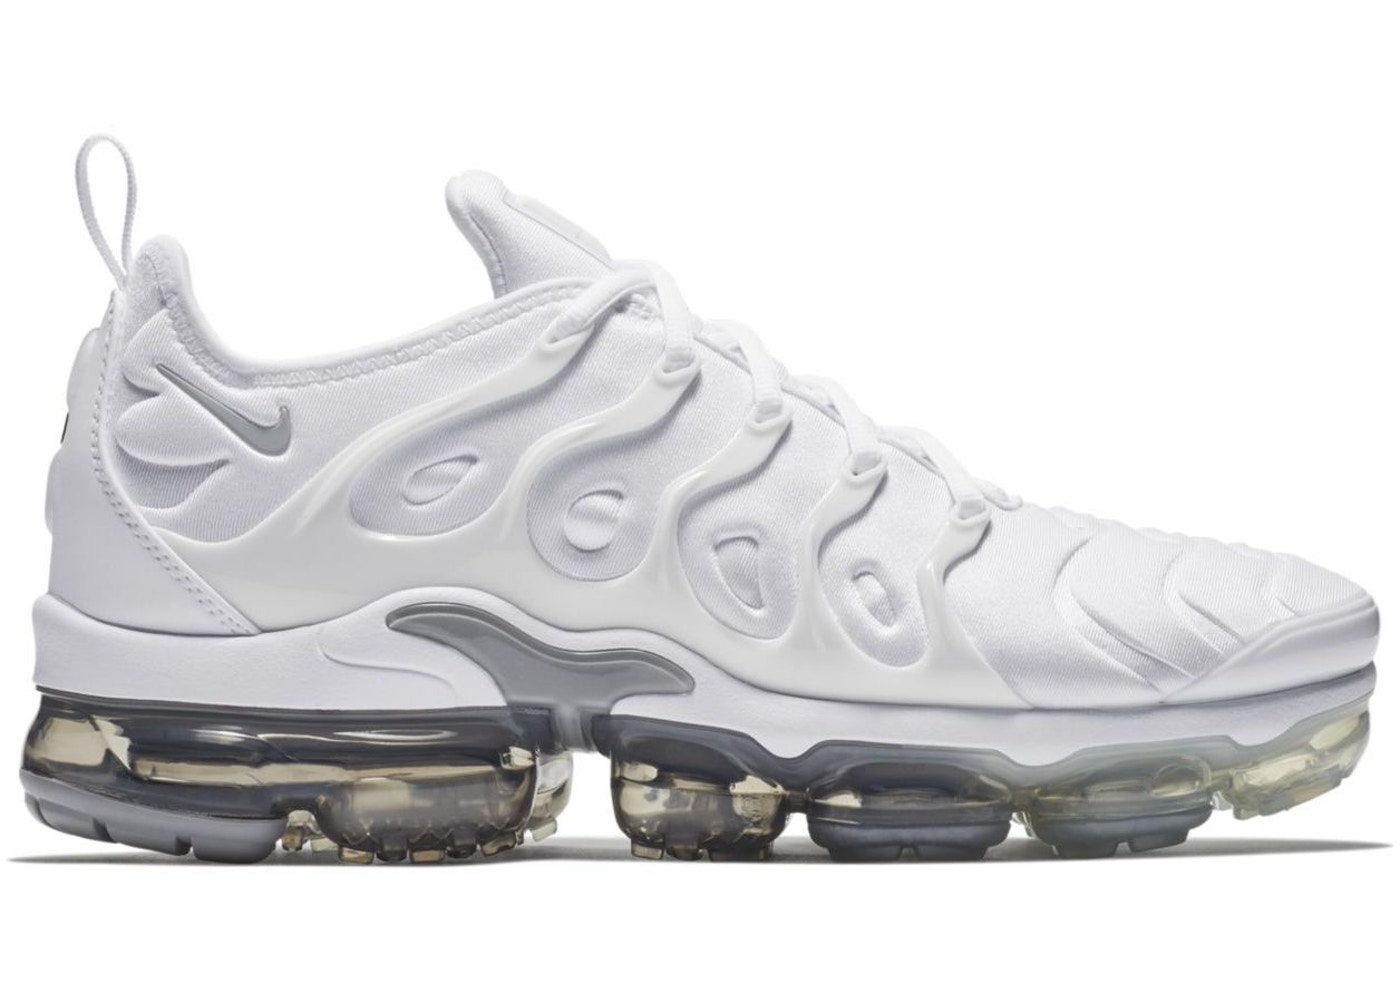 c95bc18a1d7 Air VaporMax Plus White Pure Platinum - 924453-102